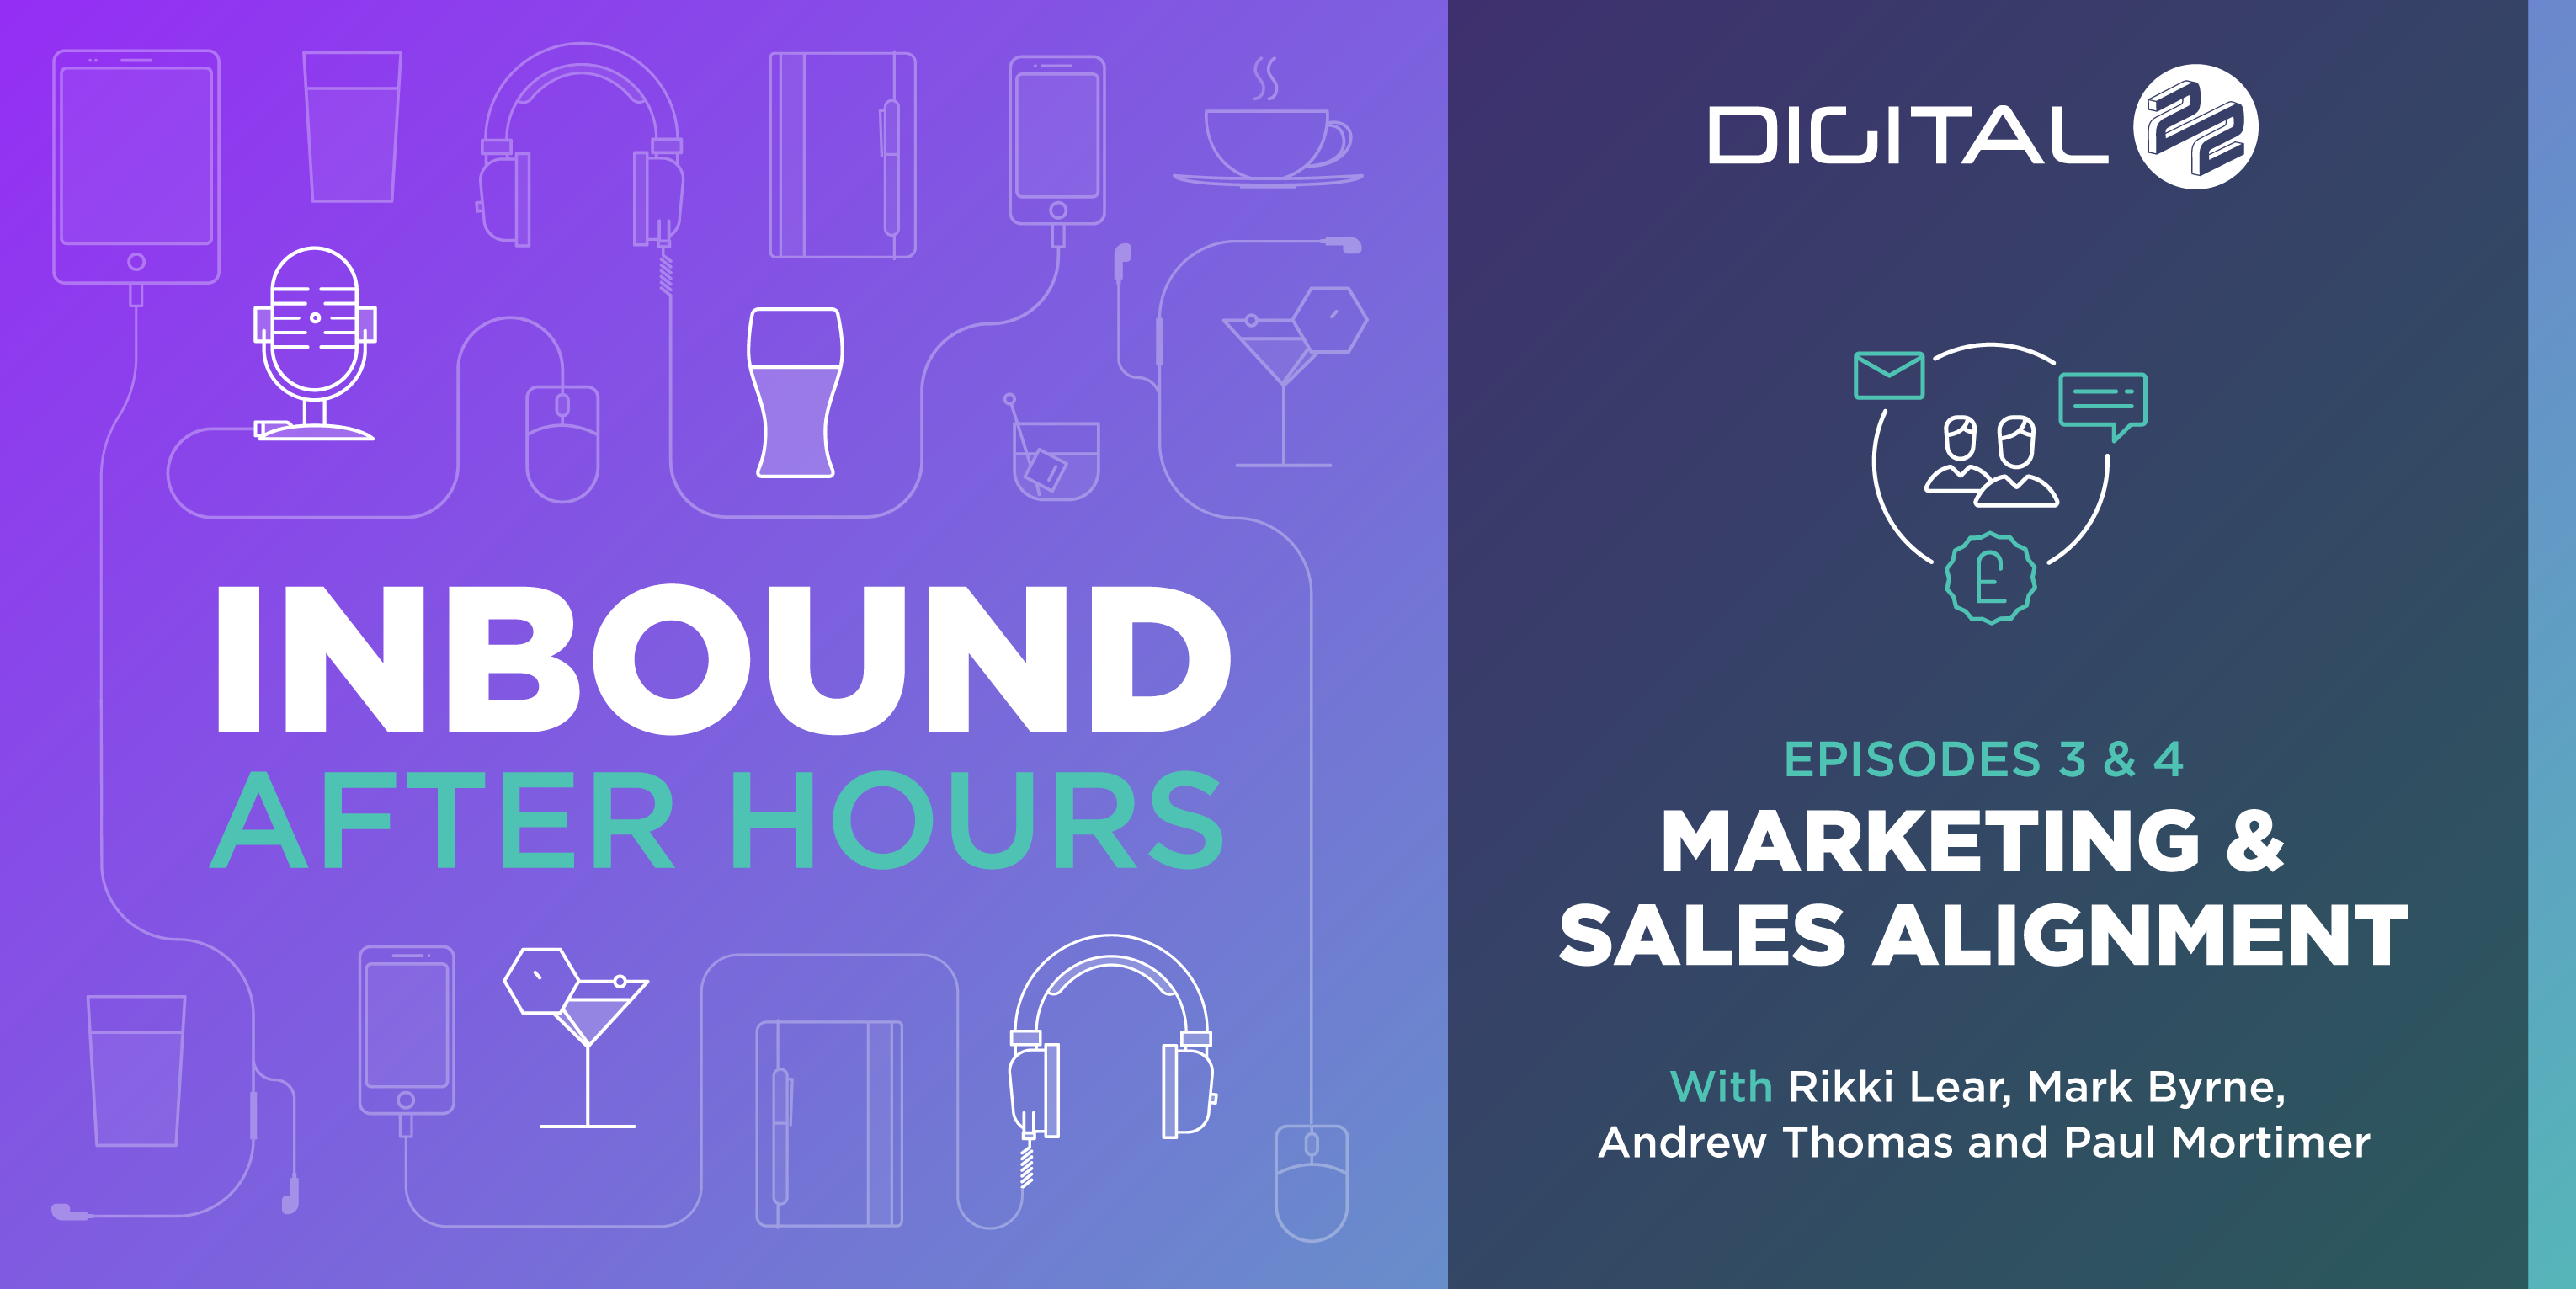 digital_22_inbound_after_hours_banner_-_episodes_3___4_mo_v1.0.png